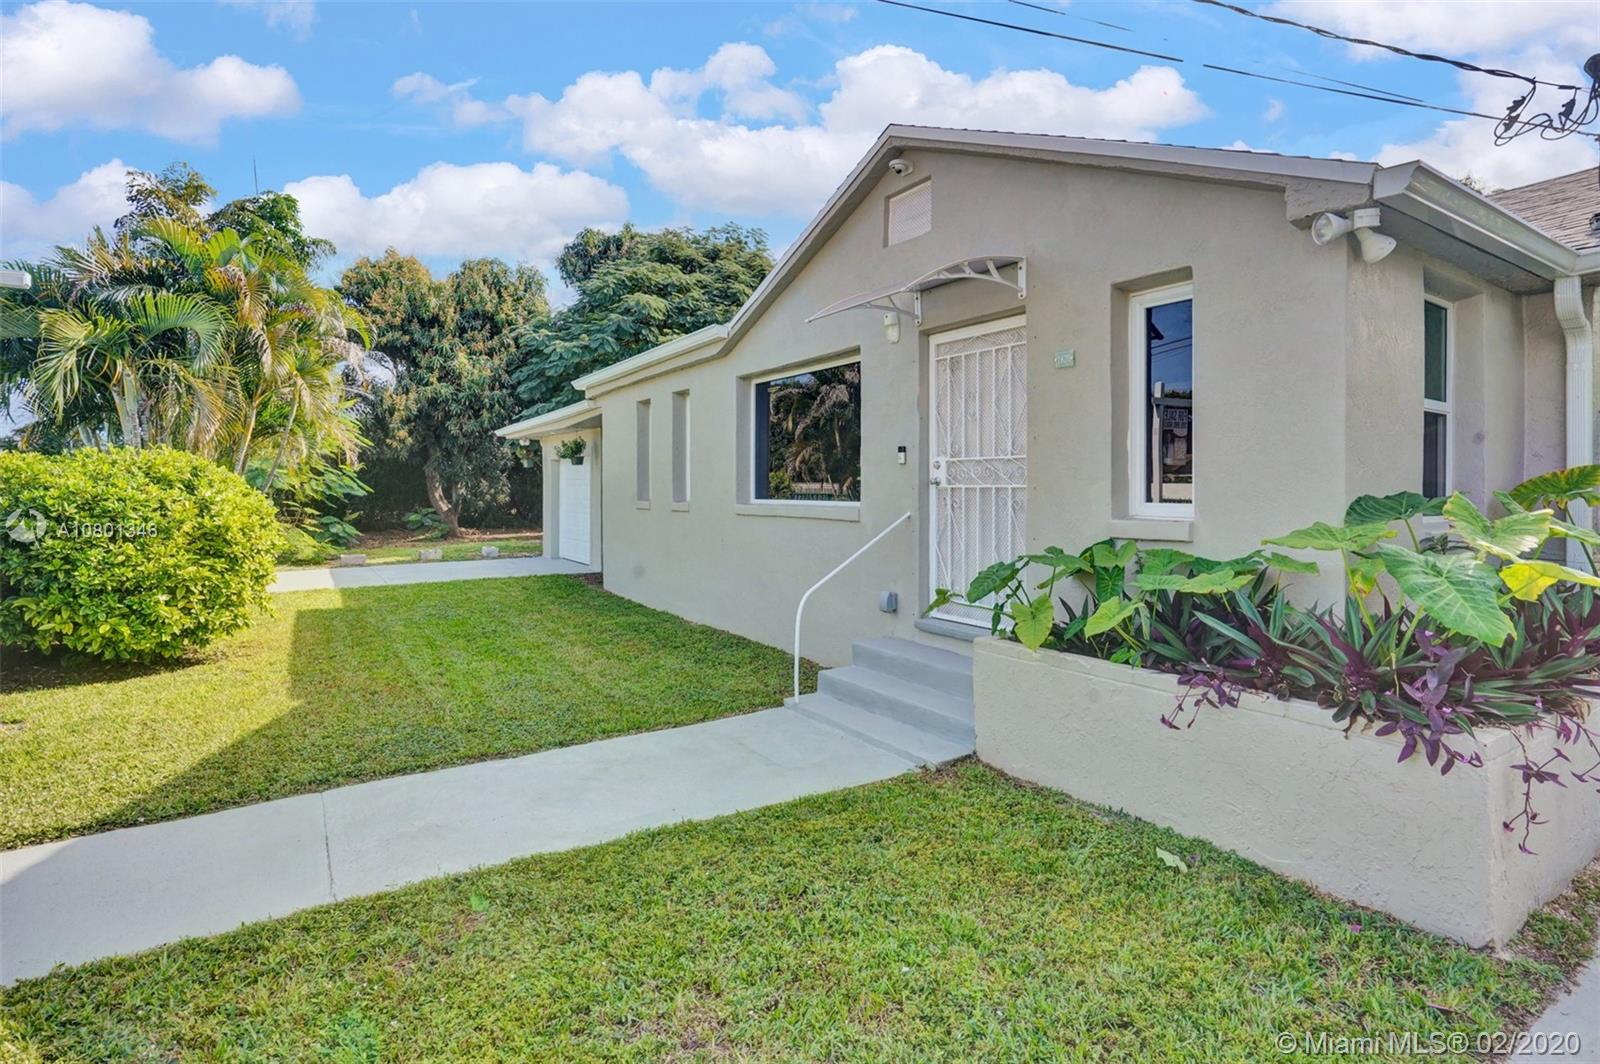 1820 NW 81 Terrace, Miami, Florida 33147, ,Commercial Sale,For Sale,1820 NW 81 Terrace,A10801346